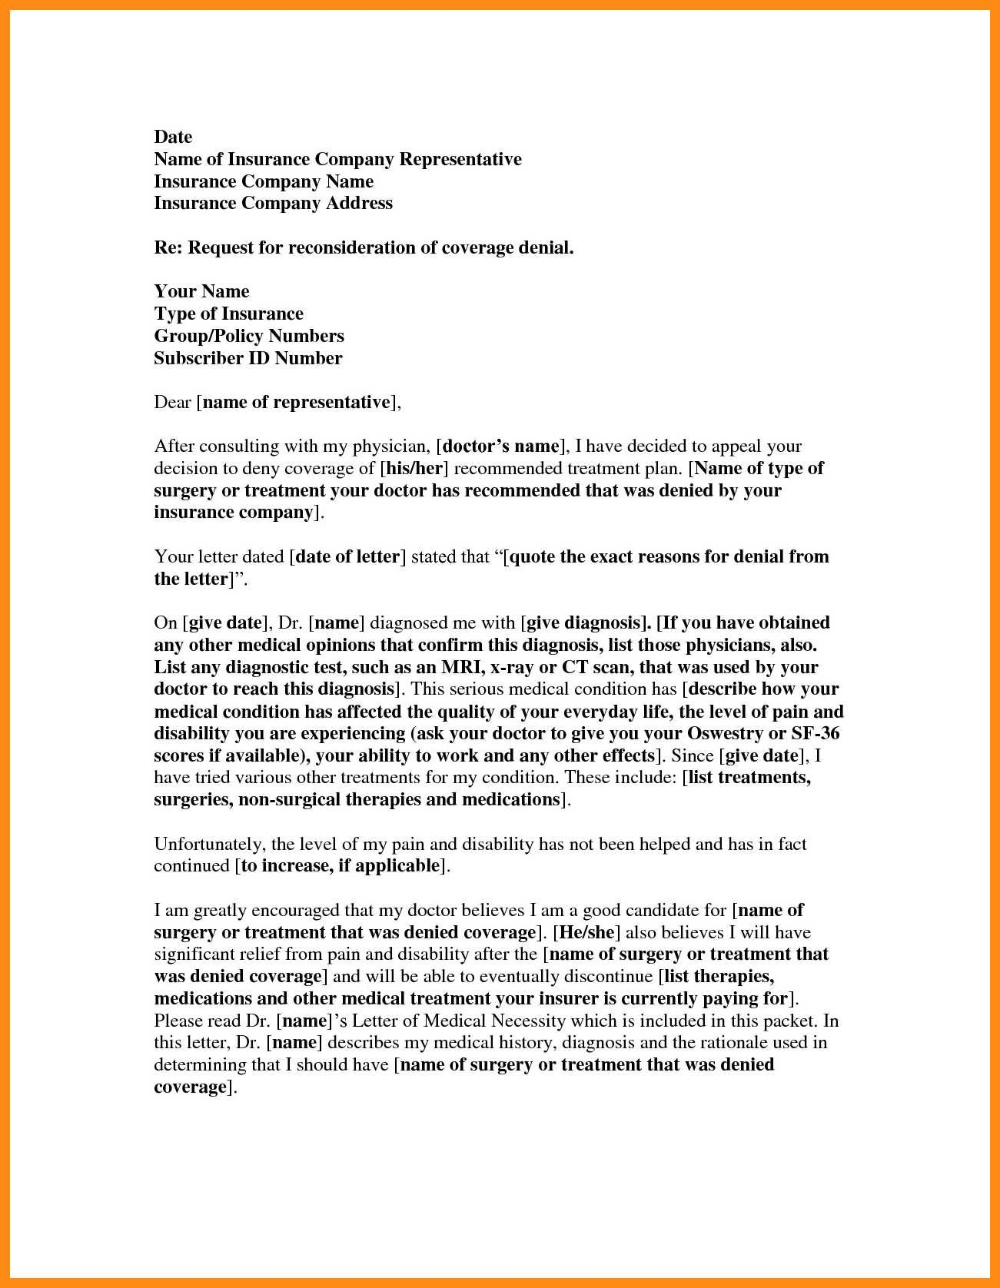 Insurance Denial Letter Template Elainegalindo Inside Insurance